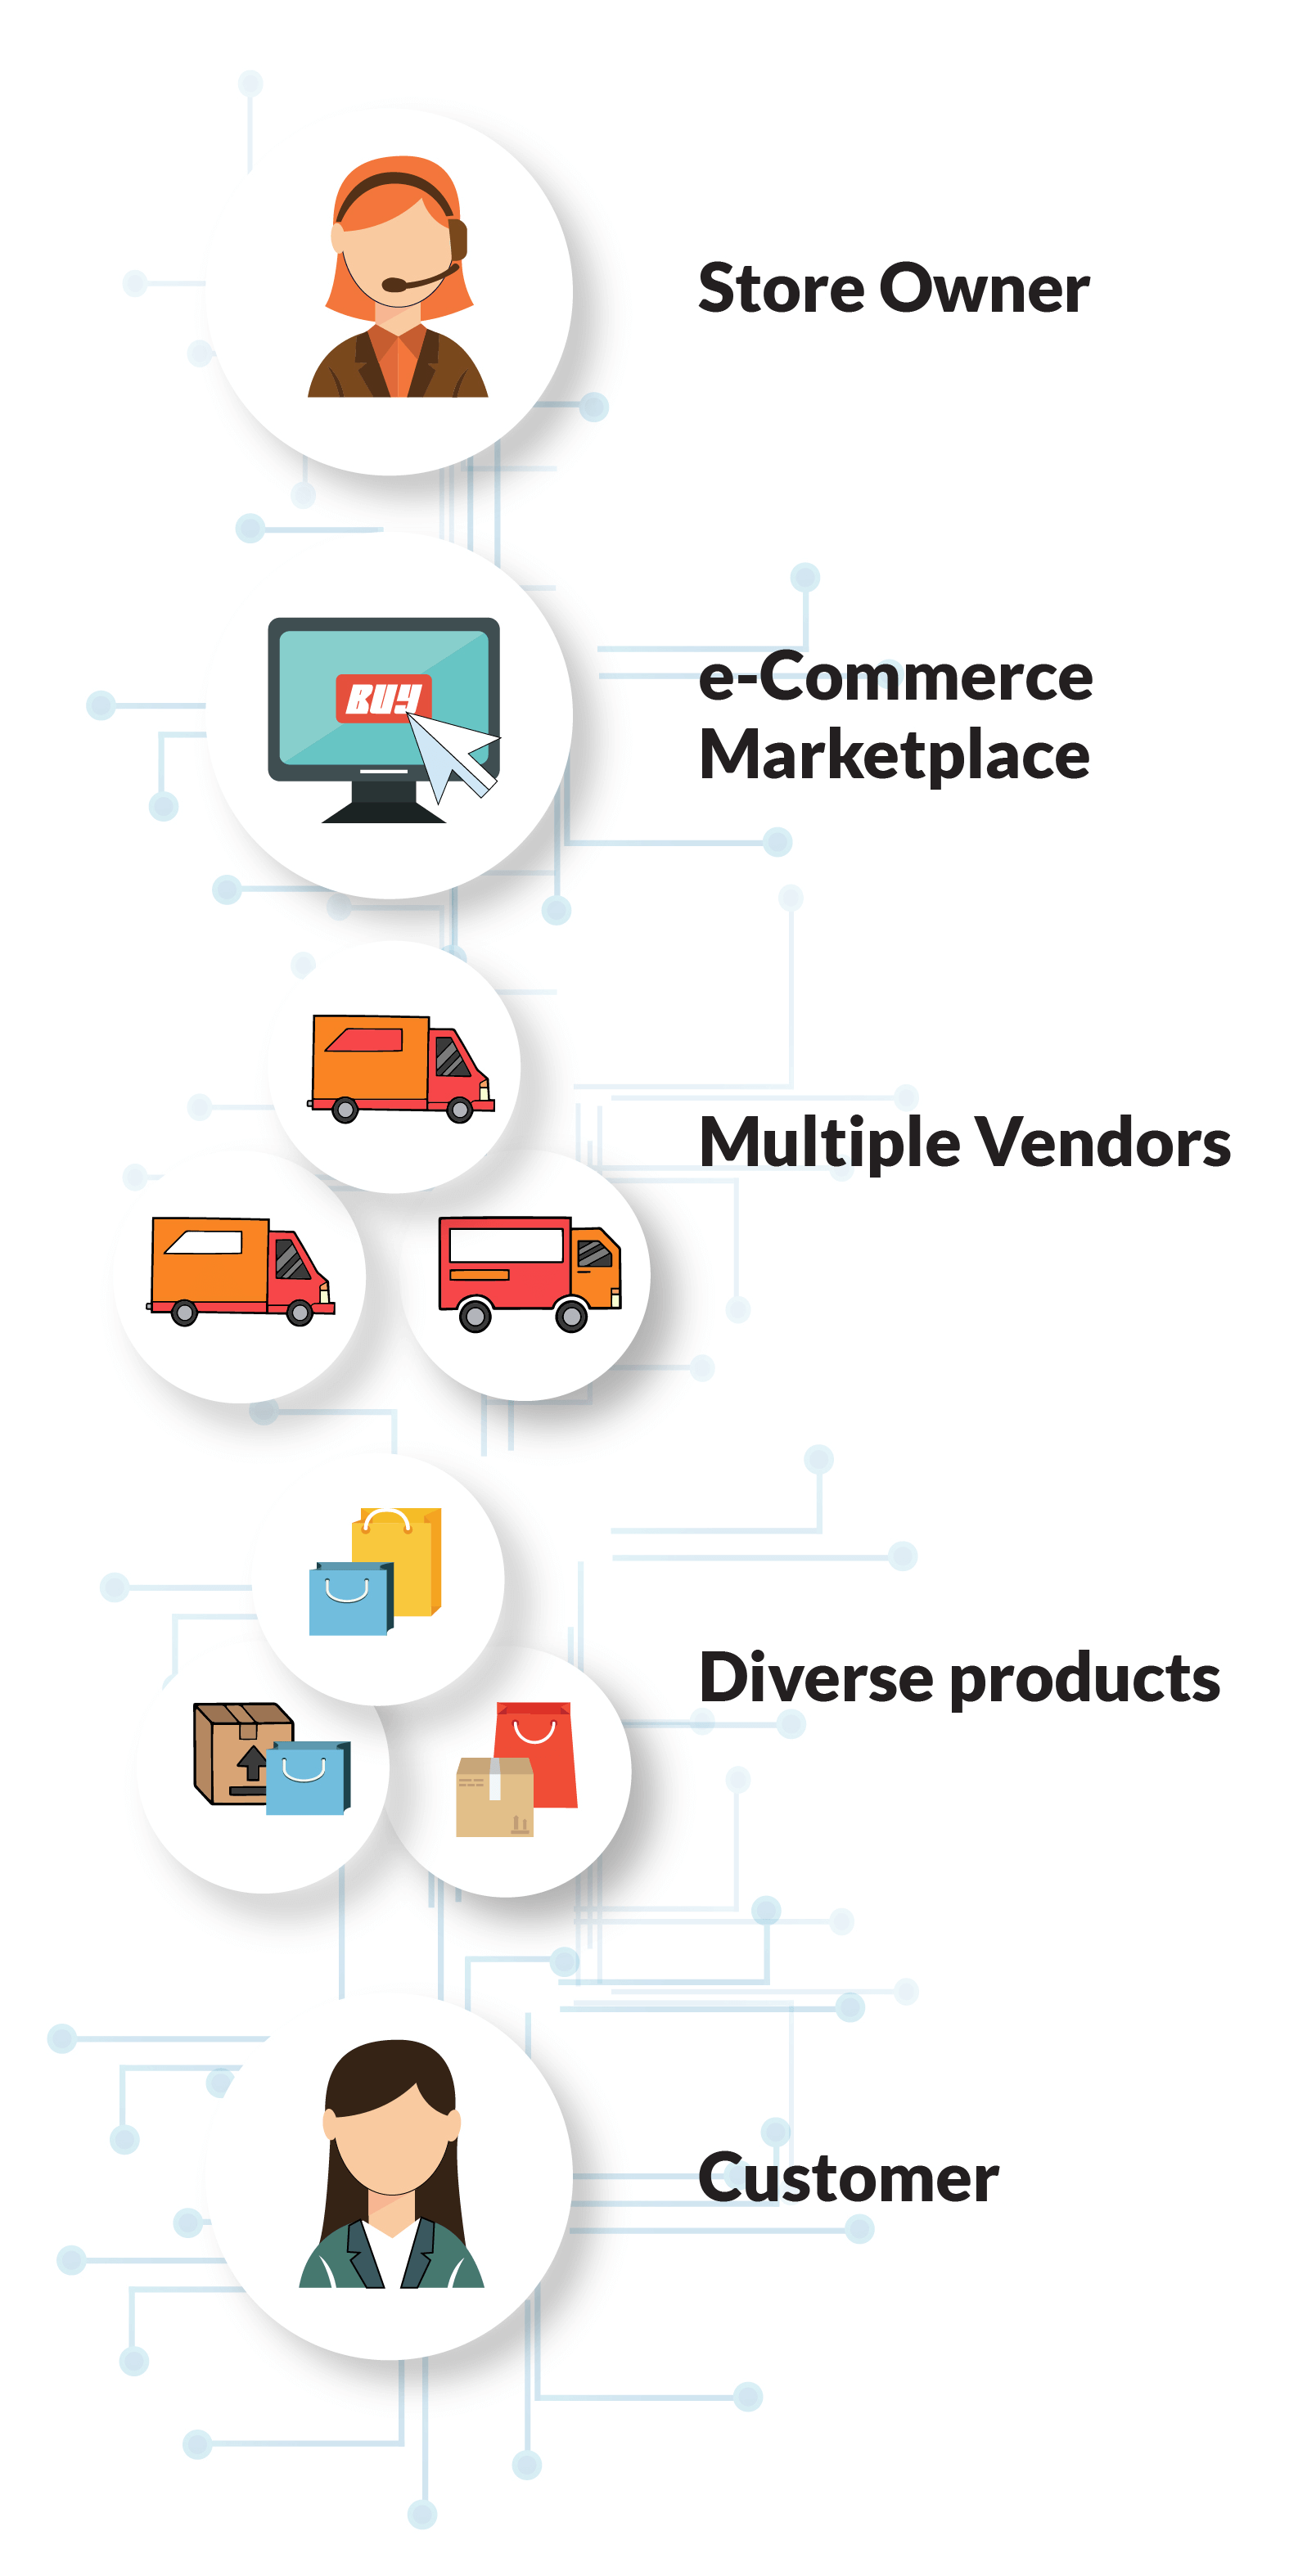 Store Owner. e-Commerce Marketplace. Multiple Vendors. Diverse Products. Customer.